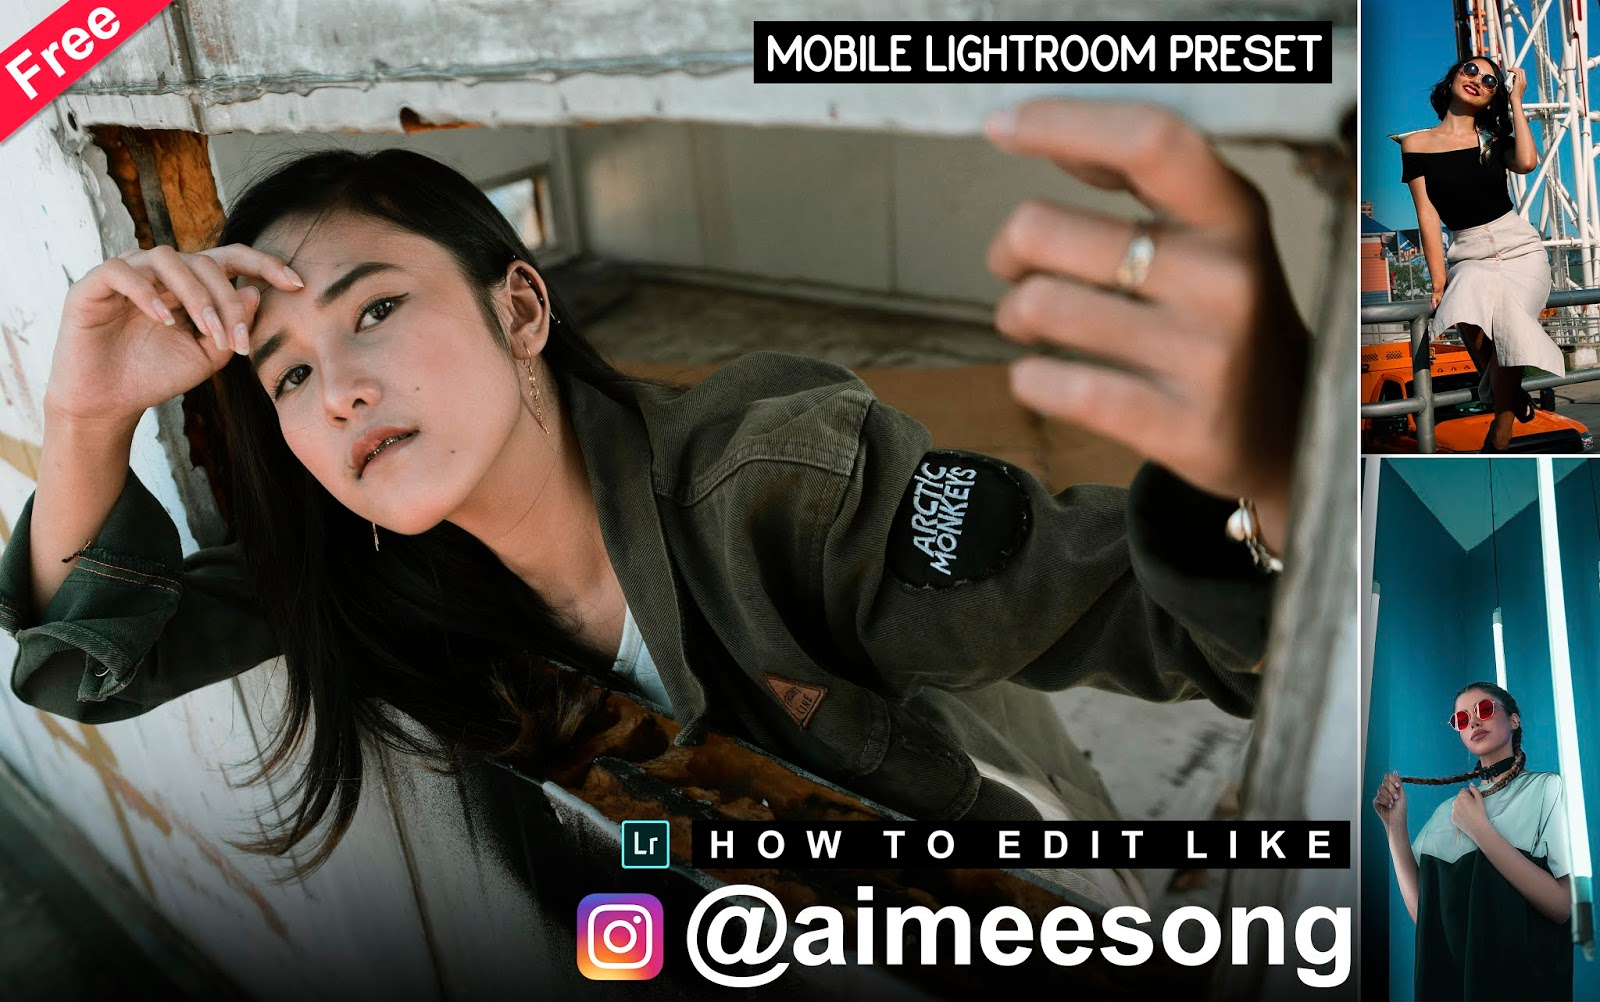 Download Aimeesong Inspired Mobile Lightroom Preset for Free | How to Edit Your Photos Like @aimeesong in Mobile Lightroom App